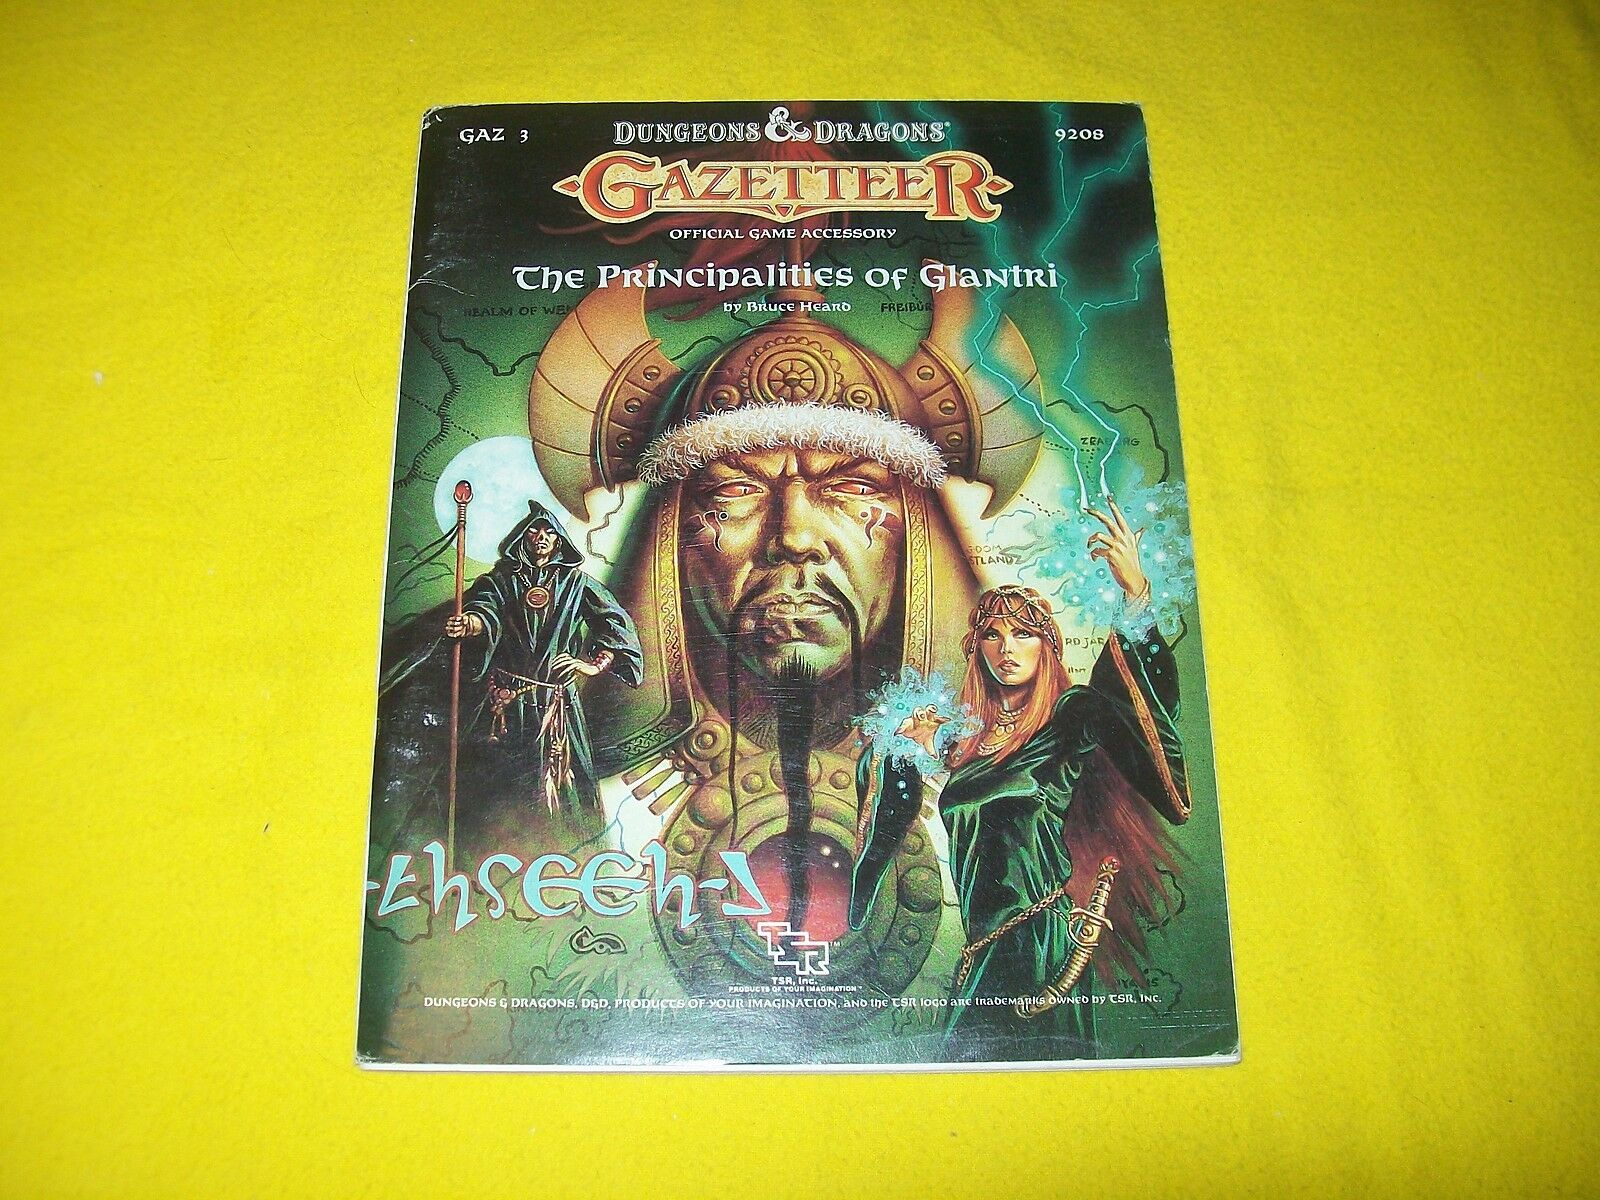 GAZ3 THE PRINCIPALITIES OF GLANTRI DUNGEONS & DRAGONS TSR 9208 - 1 WITH MAP